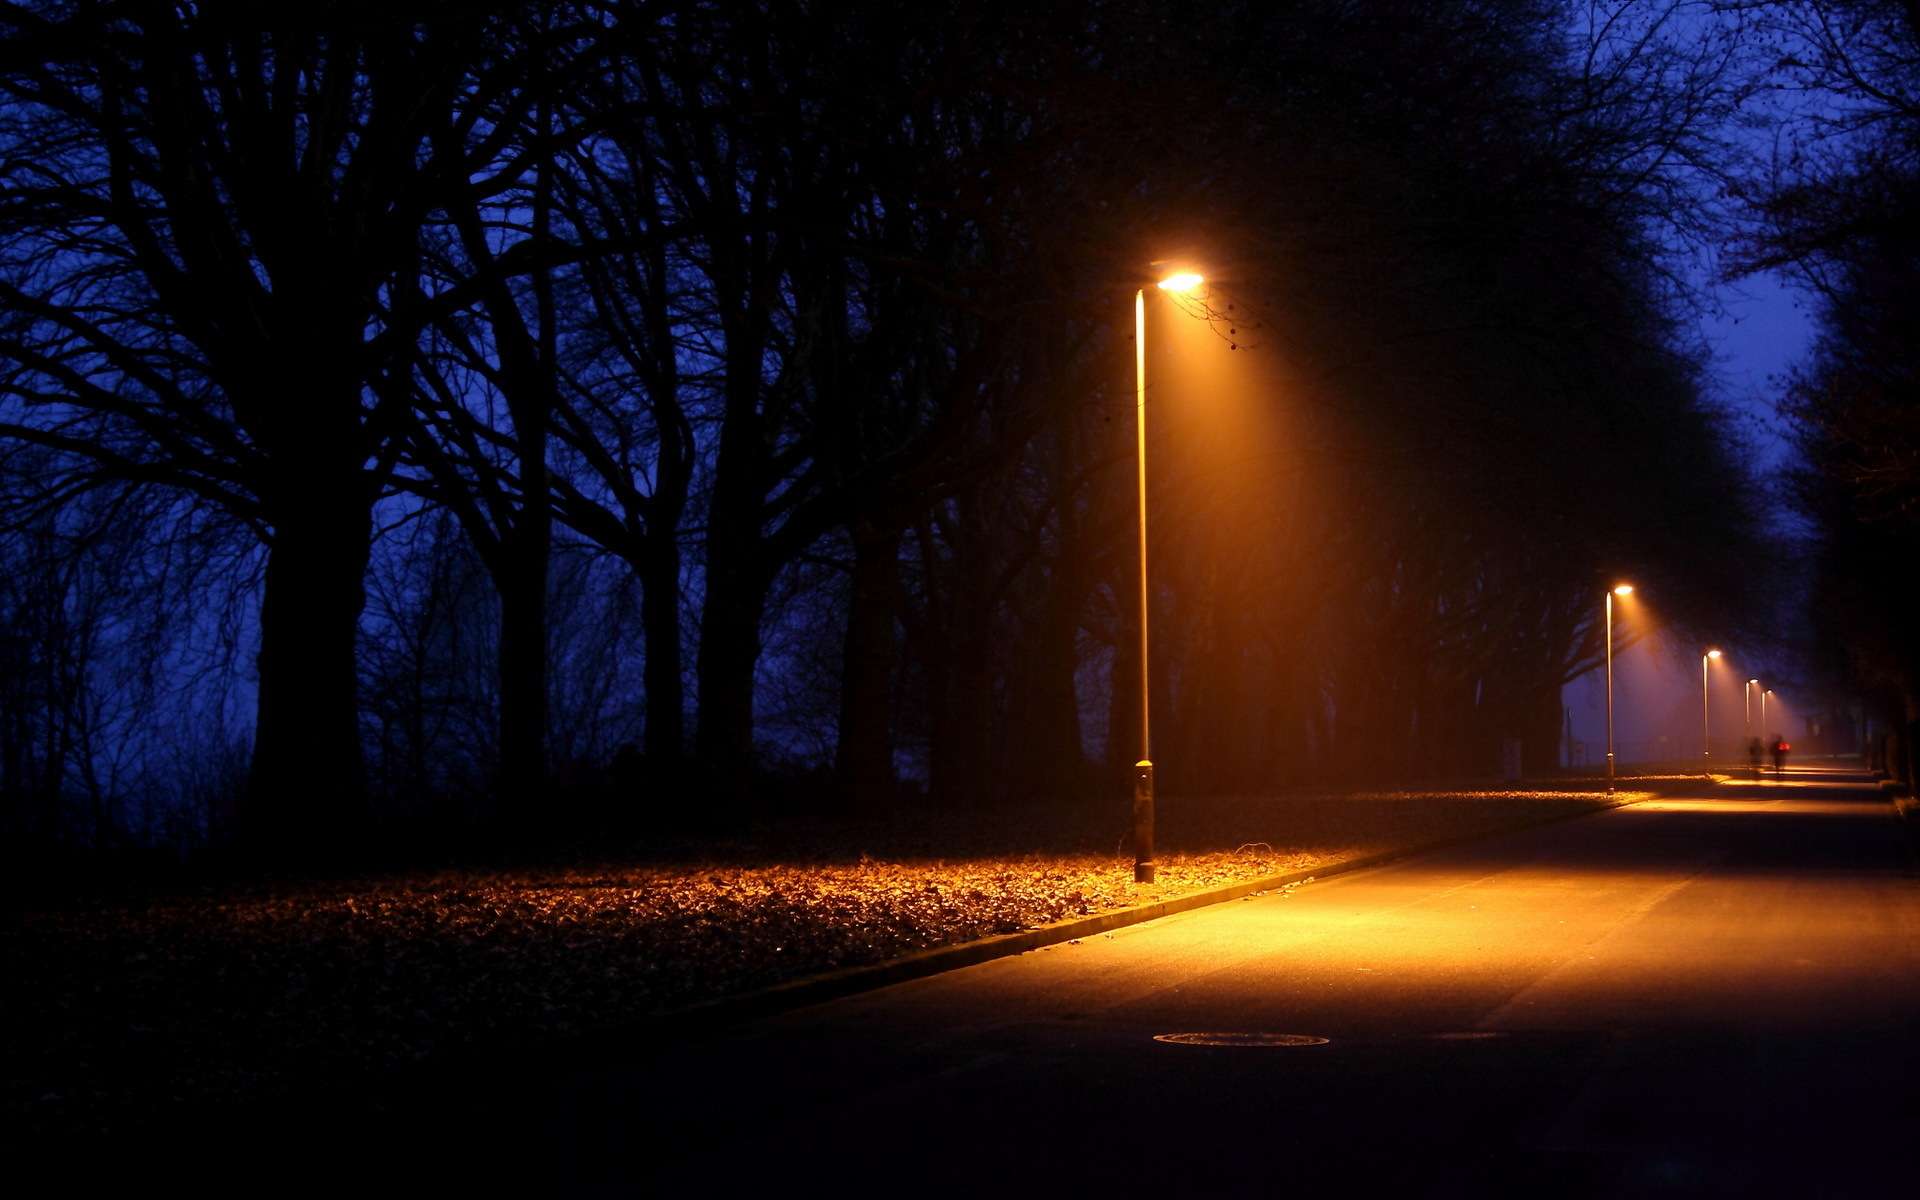 Street Light At Night Painting Nature Night Lights Lamps Lamp Post Trees Lightbeams Roads